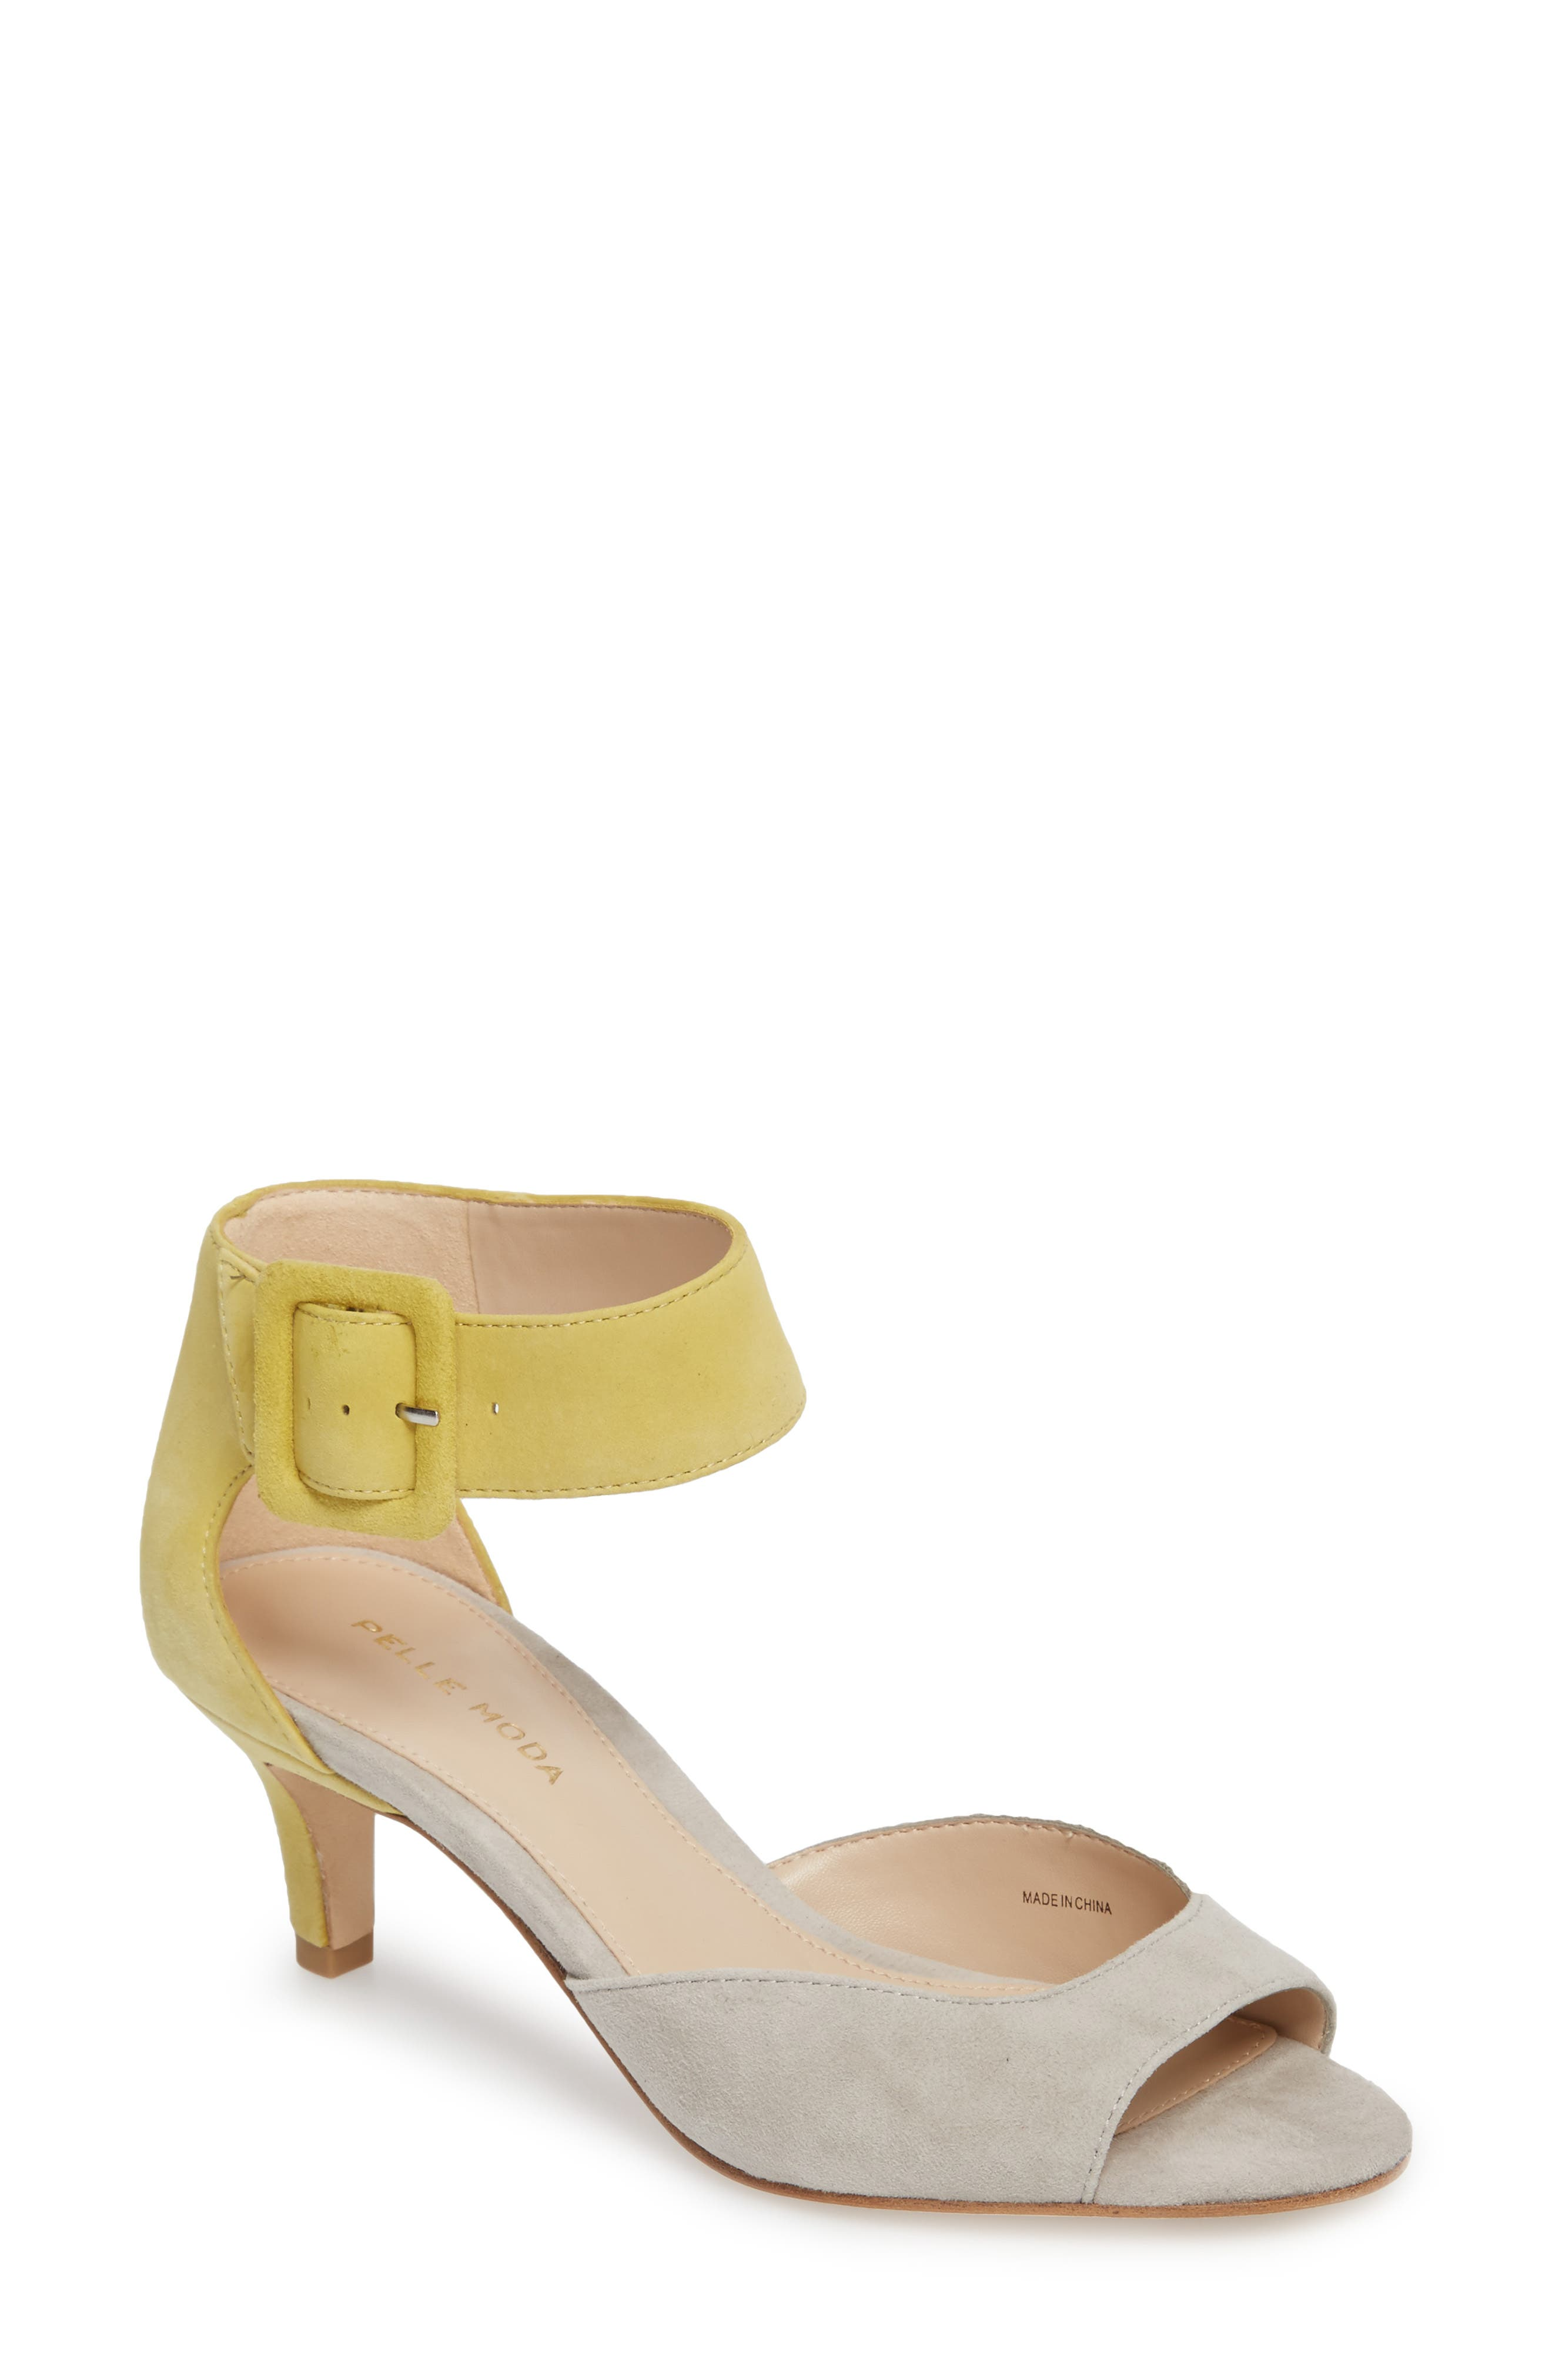 'Berlin' Ankle Strap Sandal,                         Main,                         color, 024